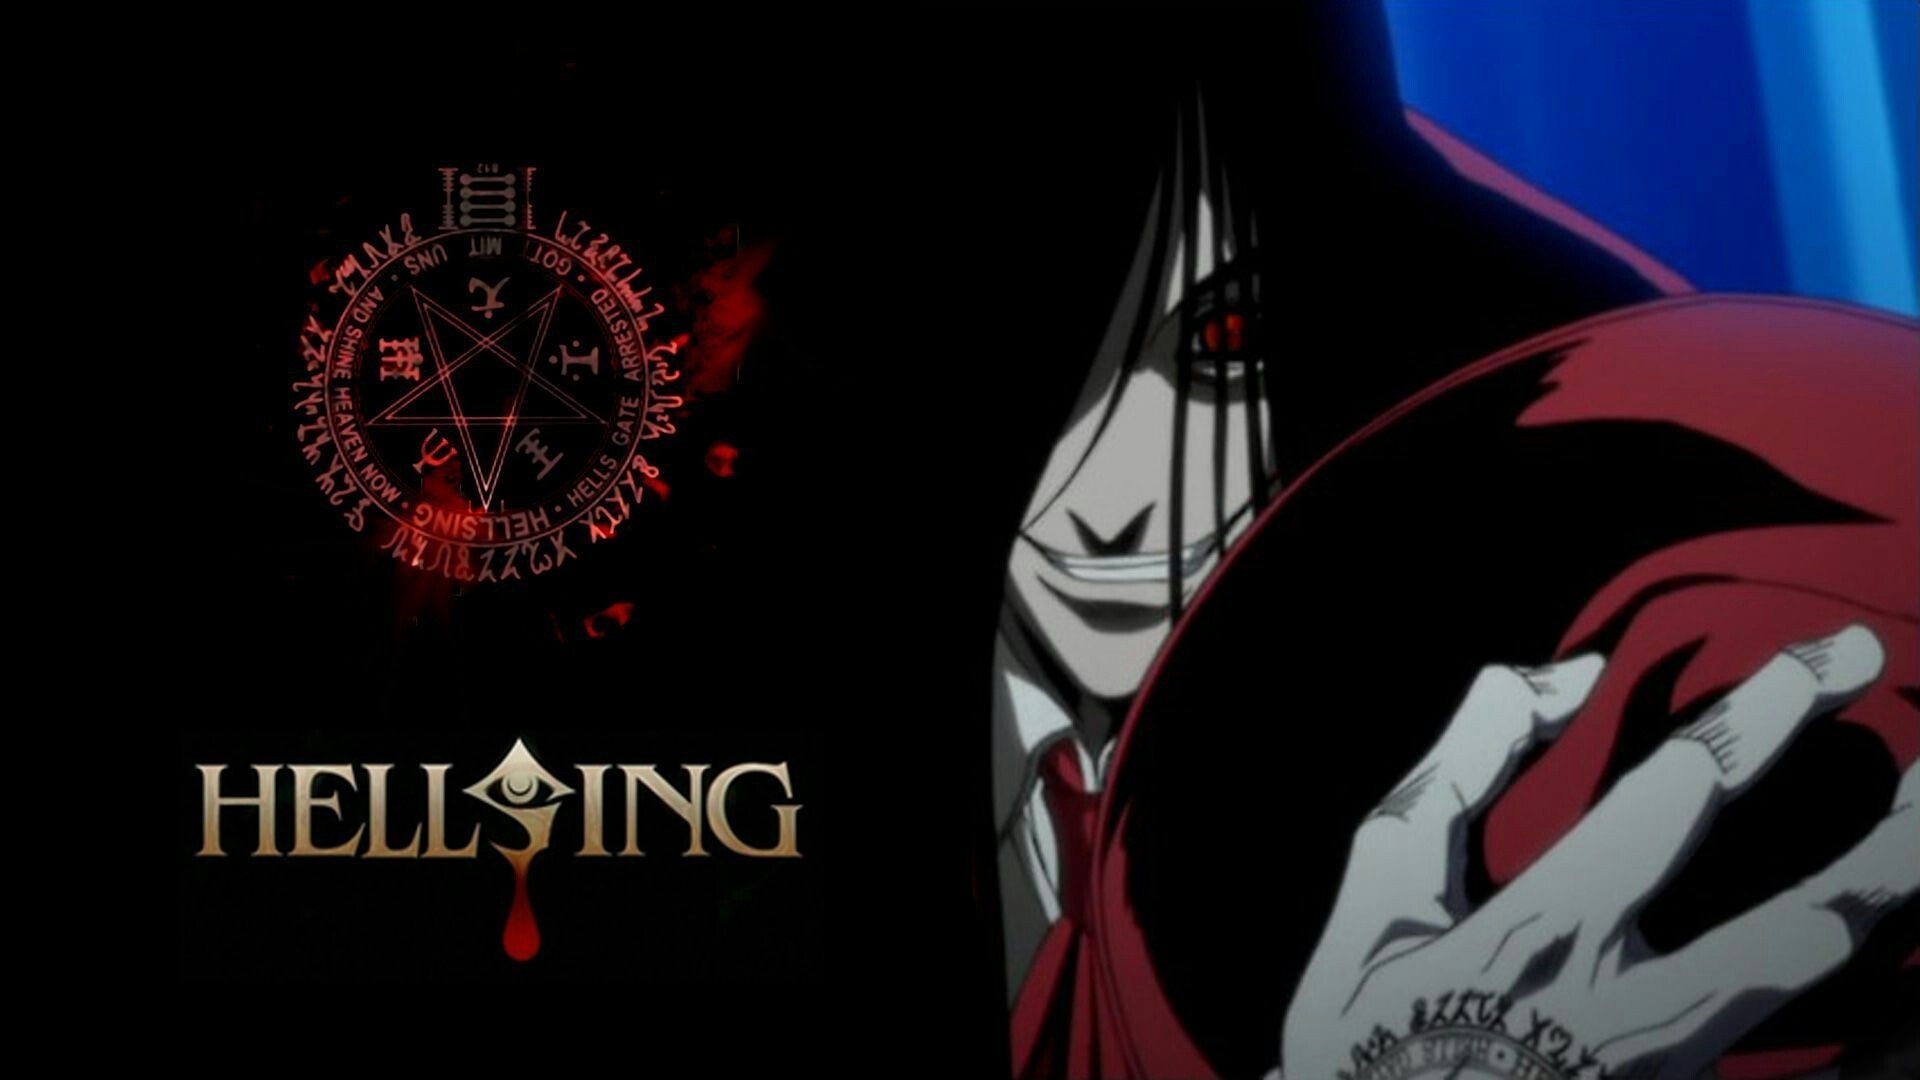 1920x1080 Hellsing Wallpapers With ID 7180 On Anime Category In HD Wallpaper Site